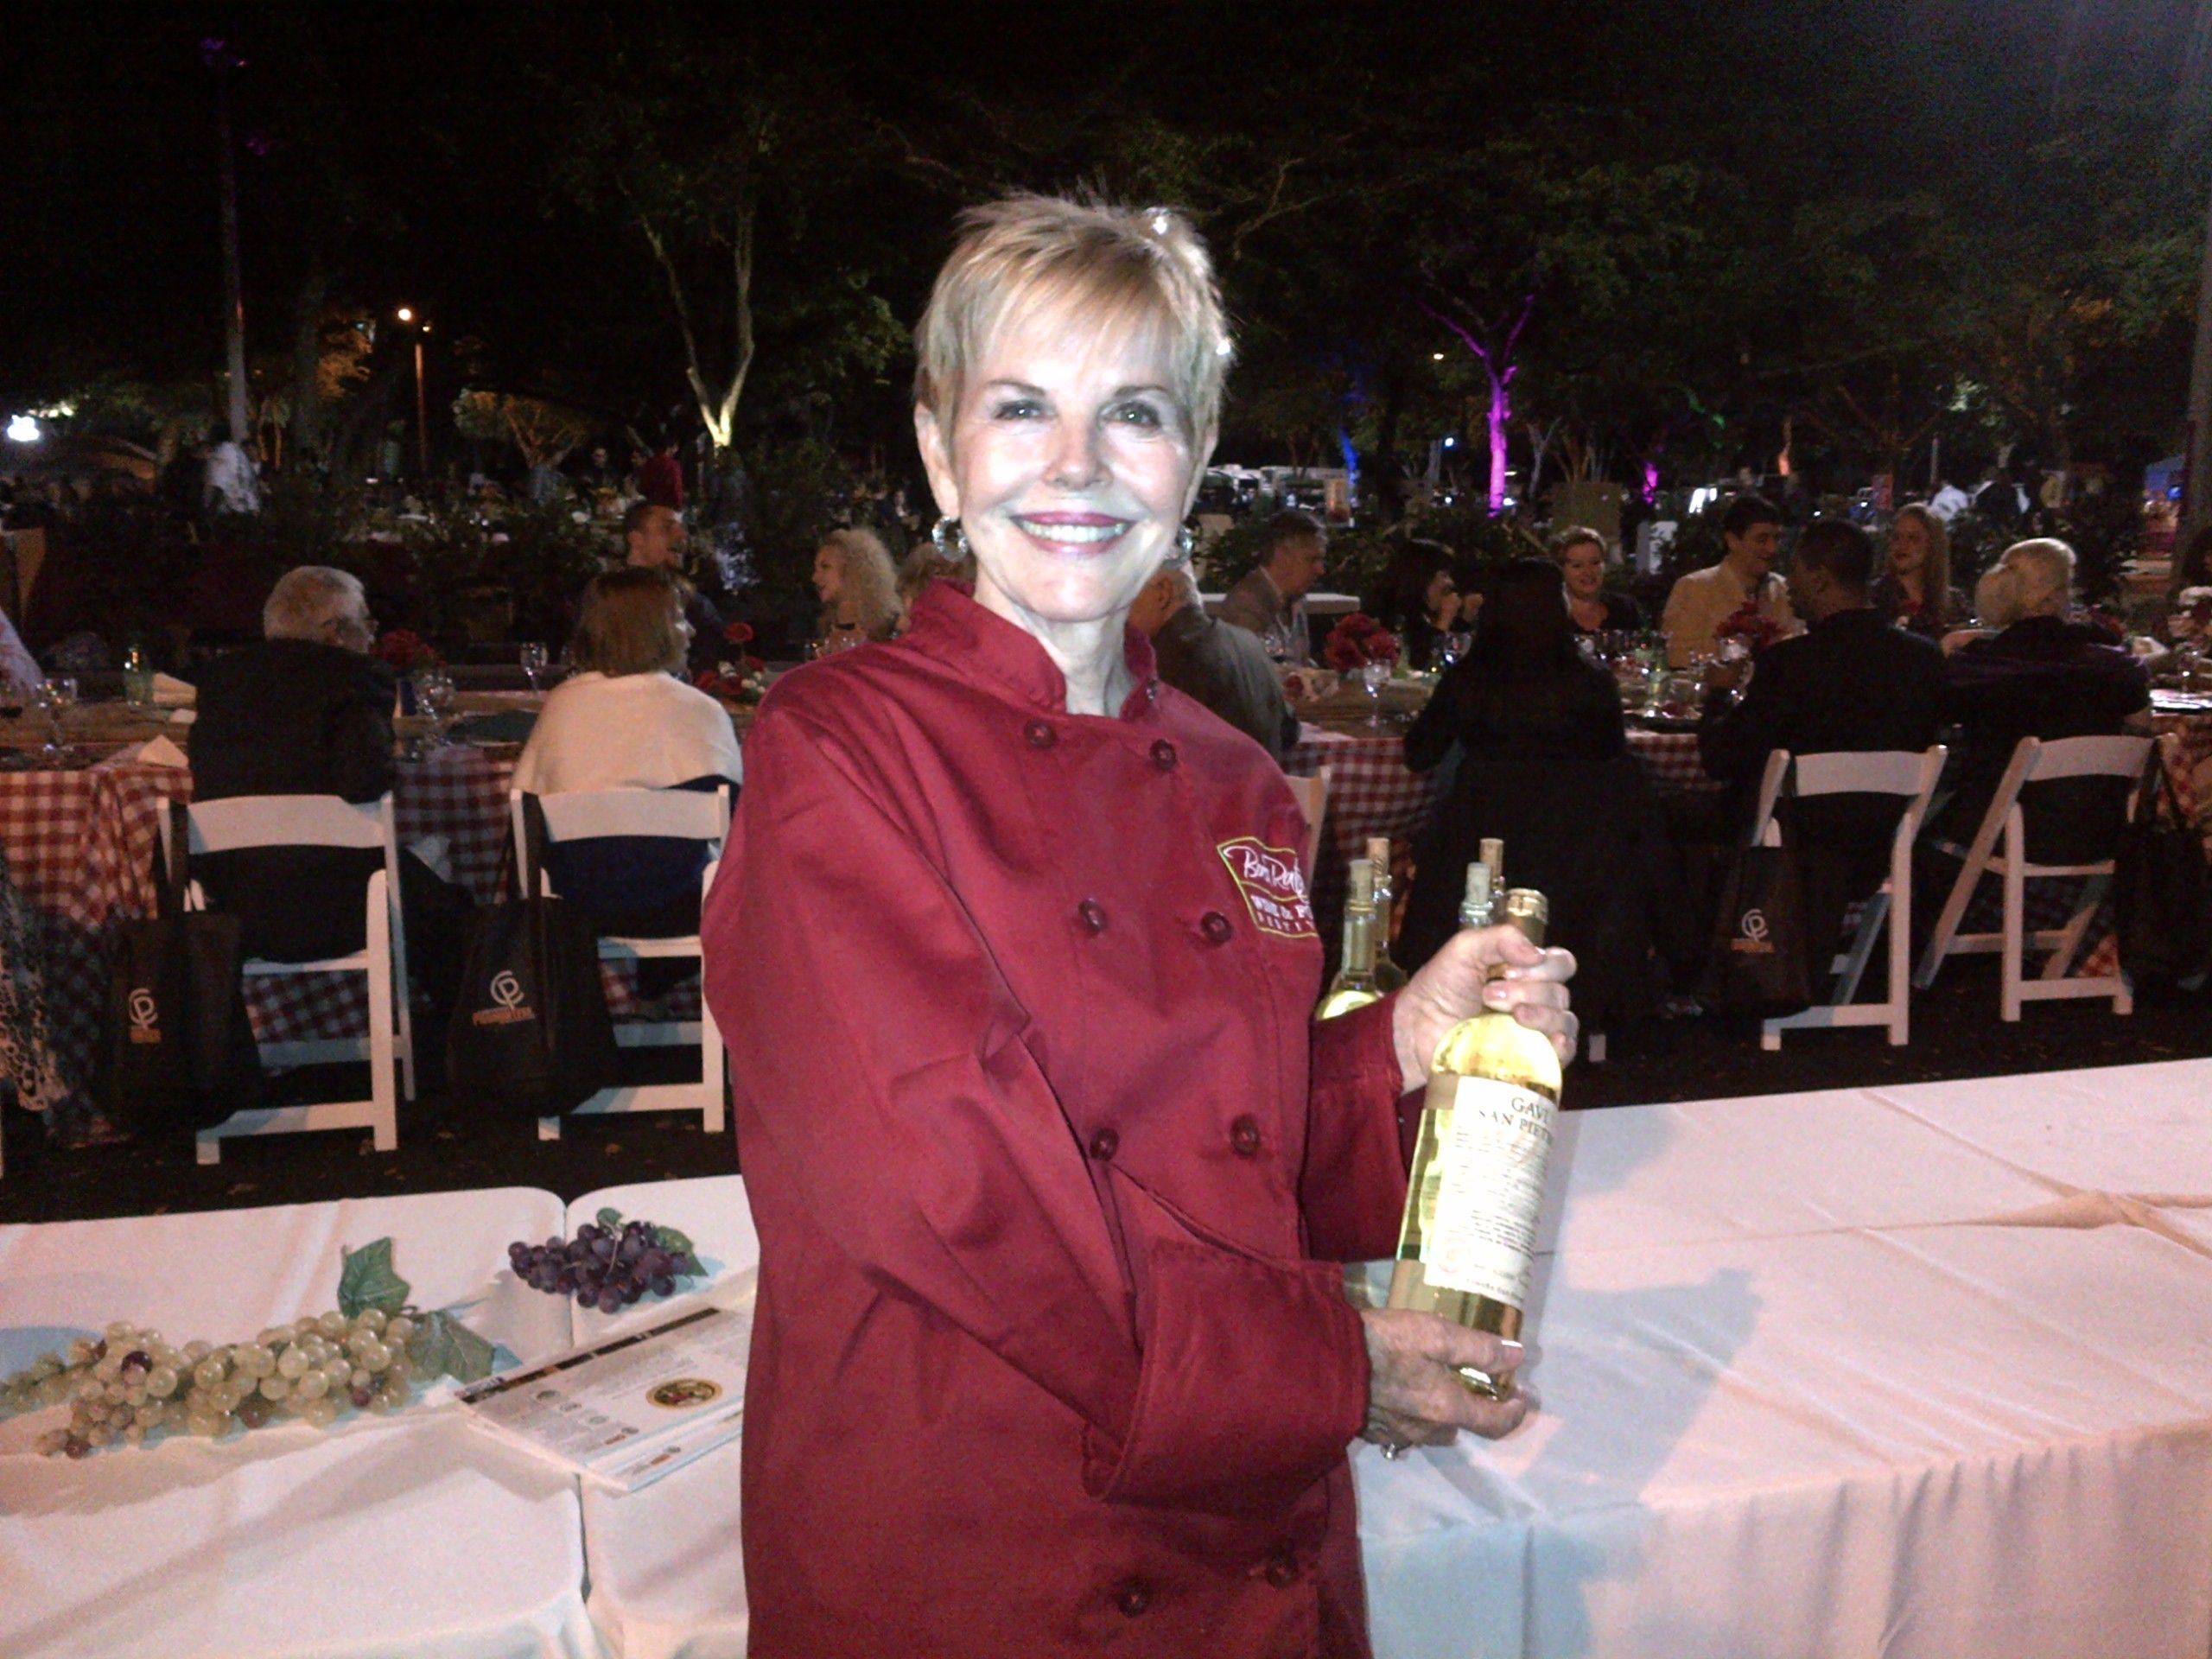 Dinner Under The Stars Boca Food And Wine Fest Join Us Tomorrow For More Great Organic Wine Wine Recipes Organic Wine Wine Event